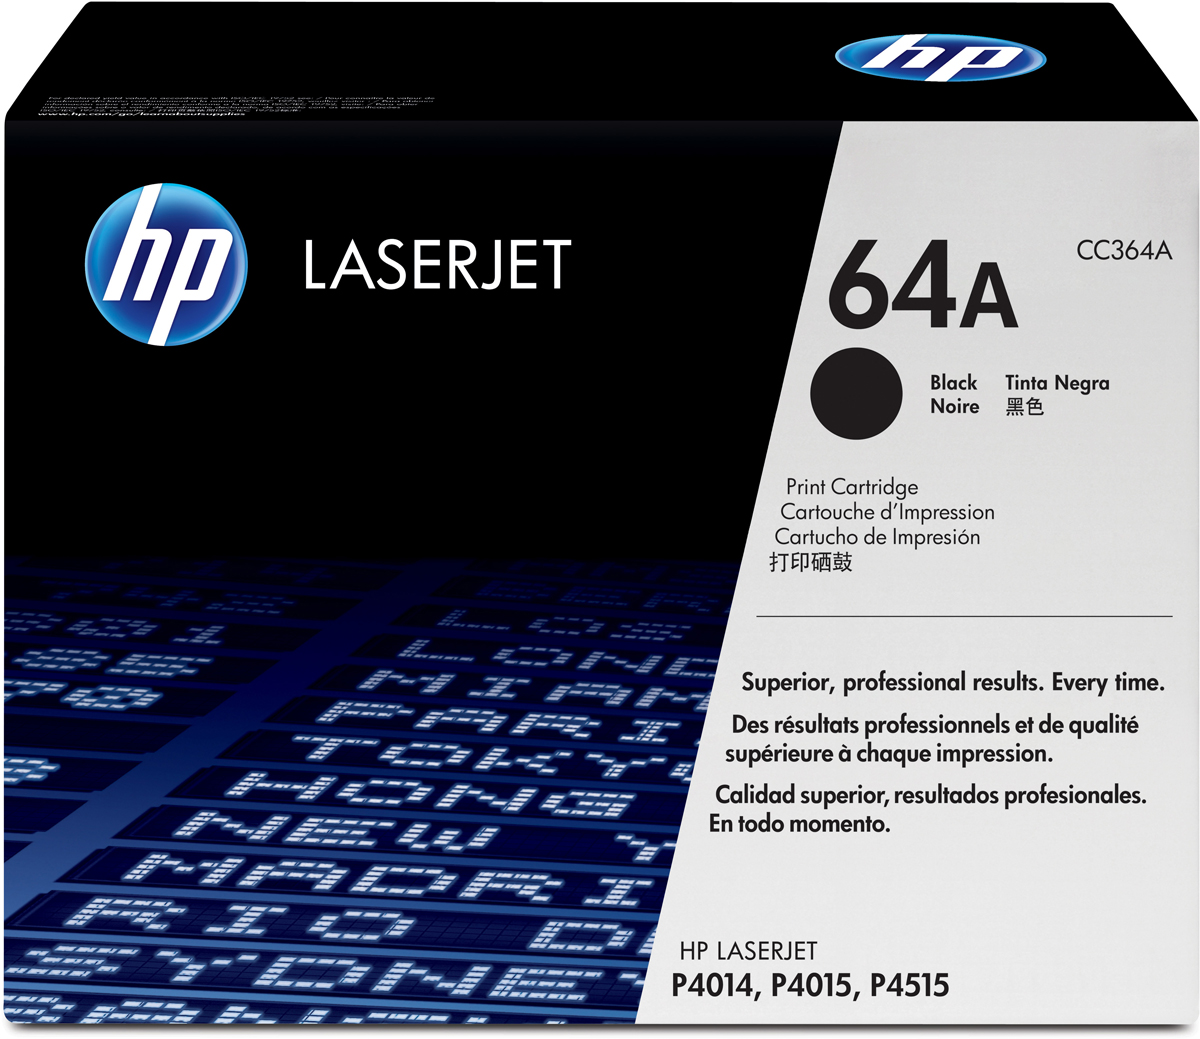 HP CC364A, Black тонер-картридж для LaserJet P4014/4015/4515CC364A